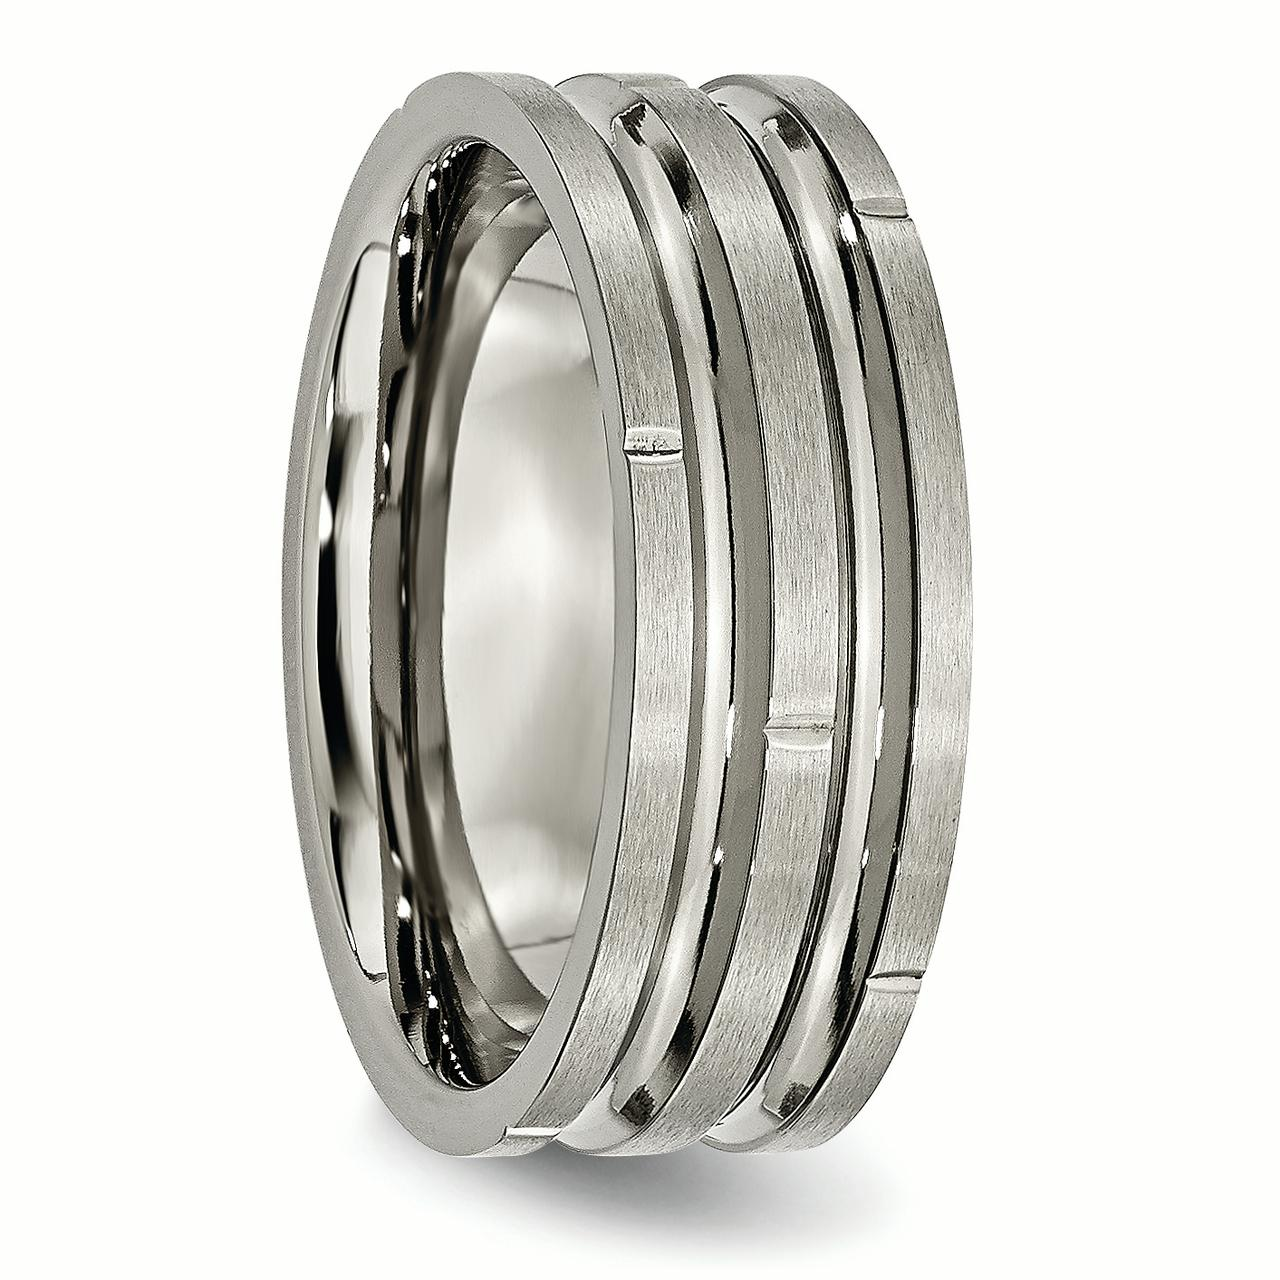 Titanium Notched Grooved 8mm Wedding Ring Band Size 8.50 Fashion Jewelry Gifts For Women For Her - image 1 of 6